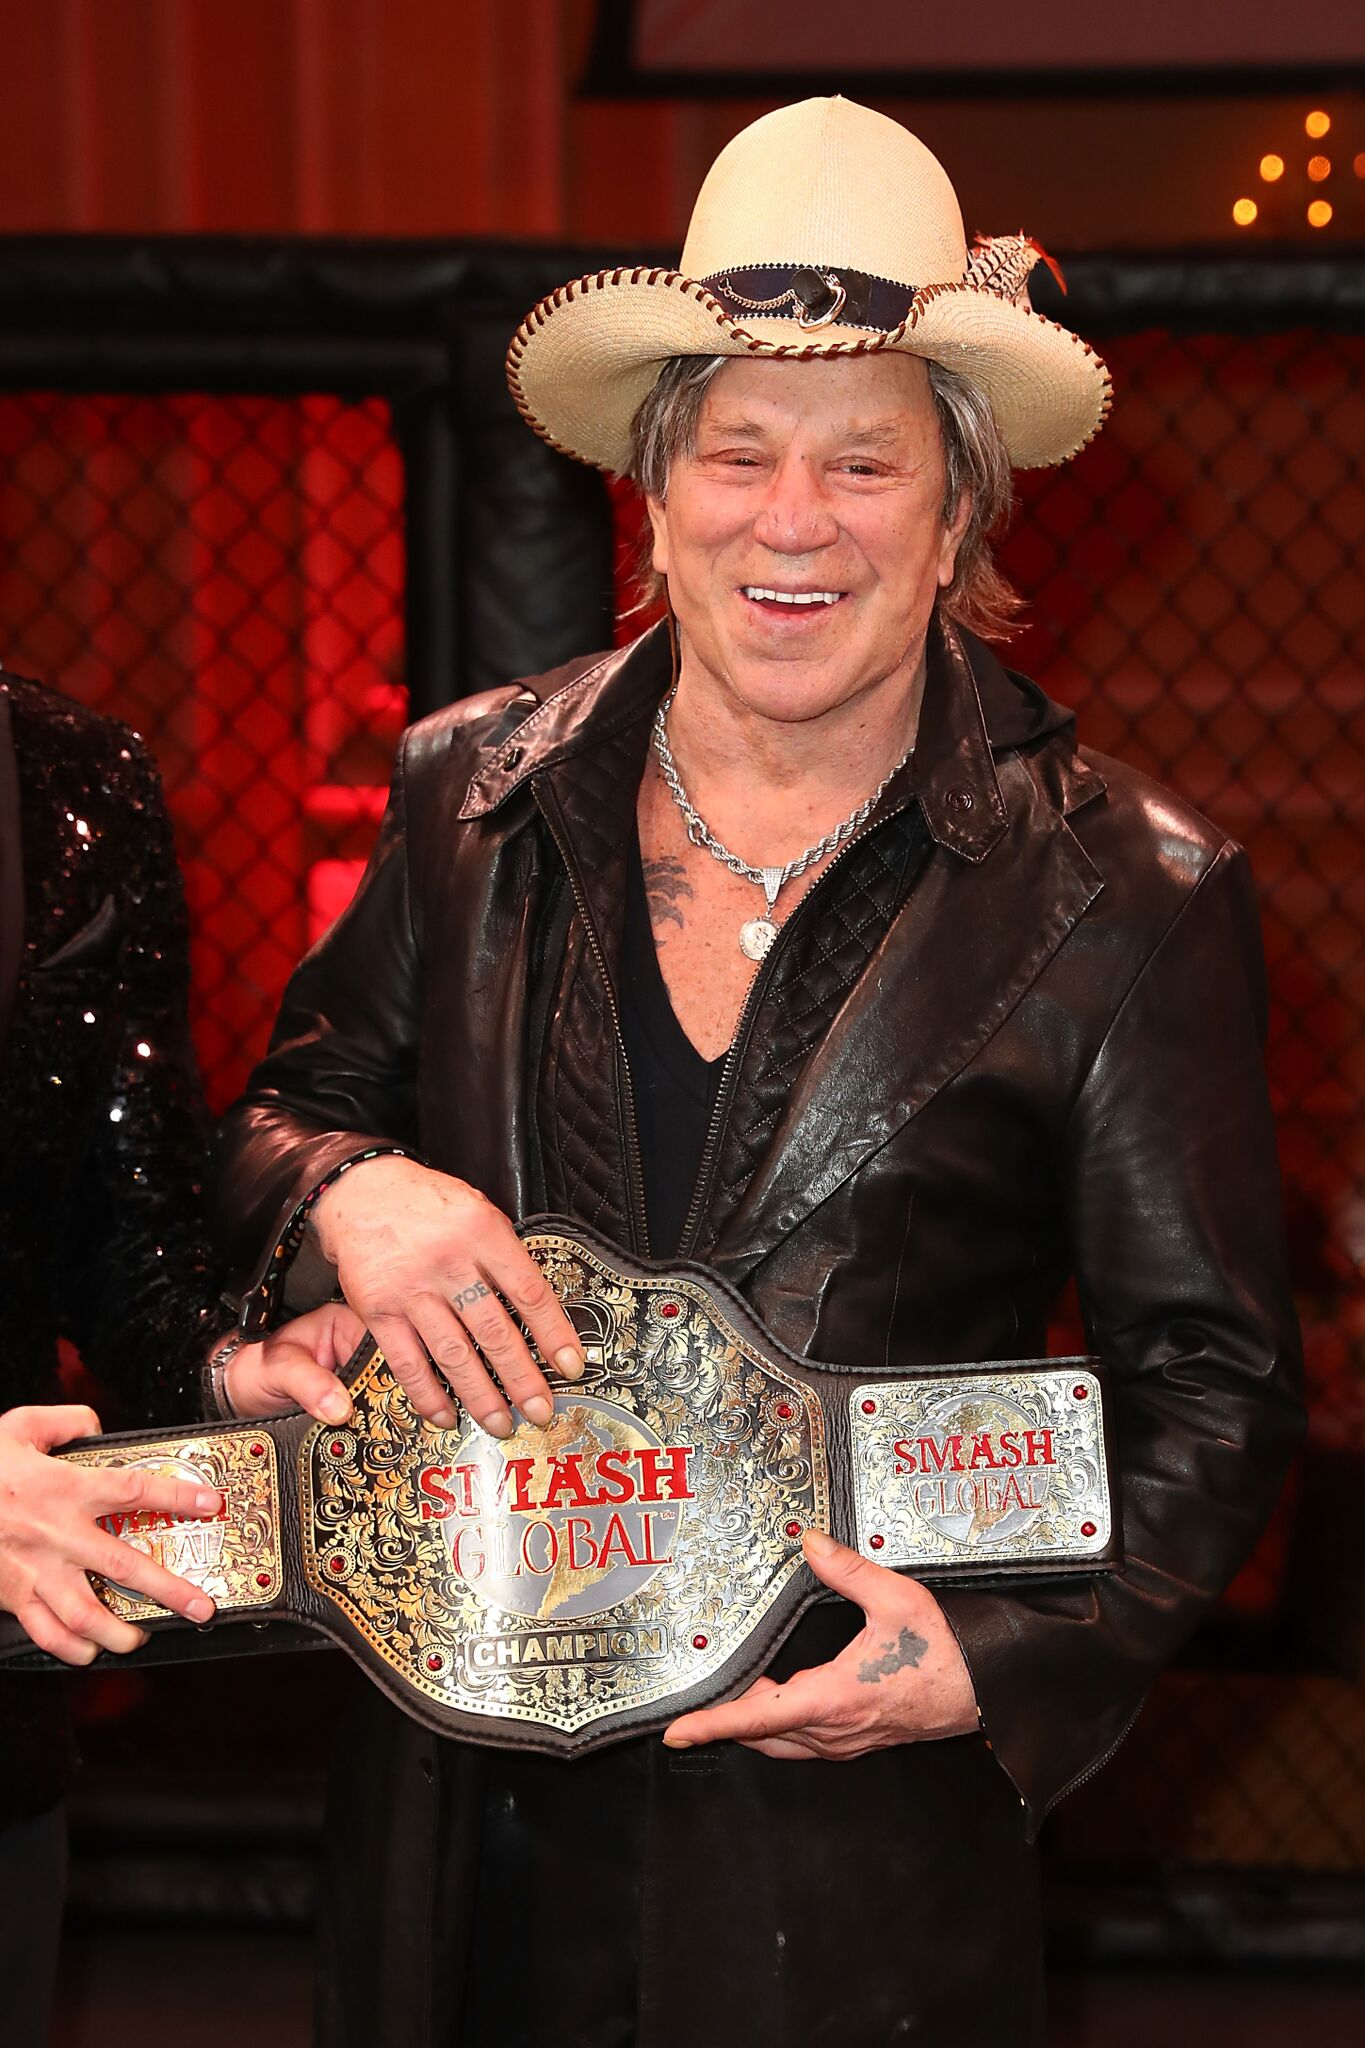 Mickey Rourke poses for a photo at SMASH Global VIII ñ Night Of Champions at Taglyan Cultural Complex | Getty Images / Global Images